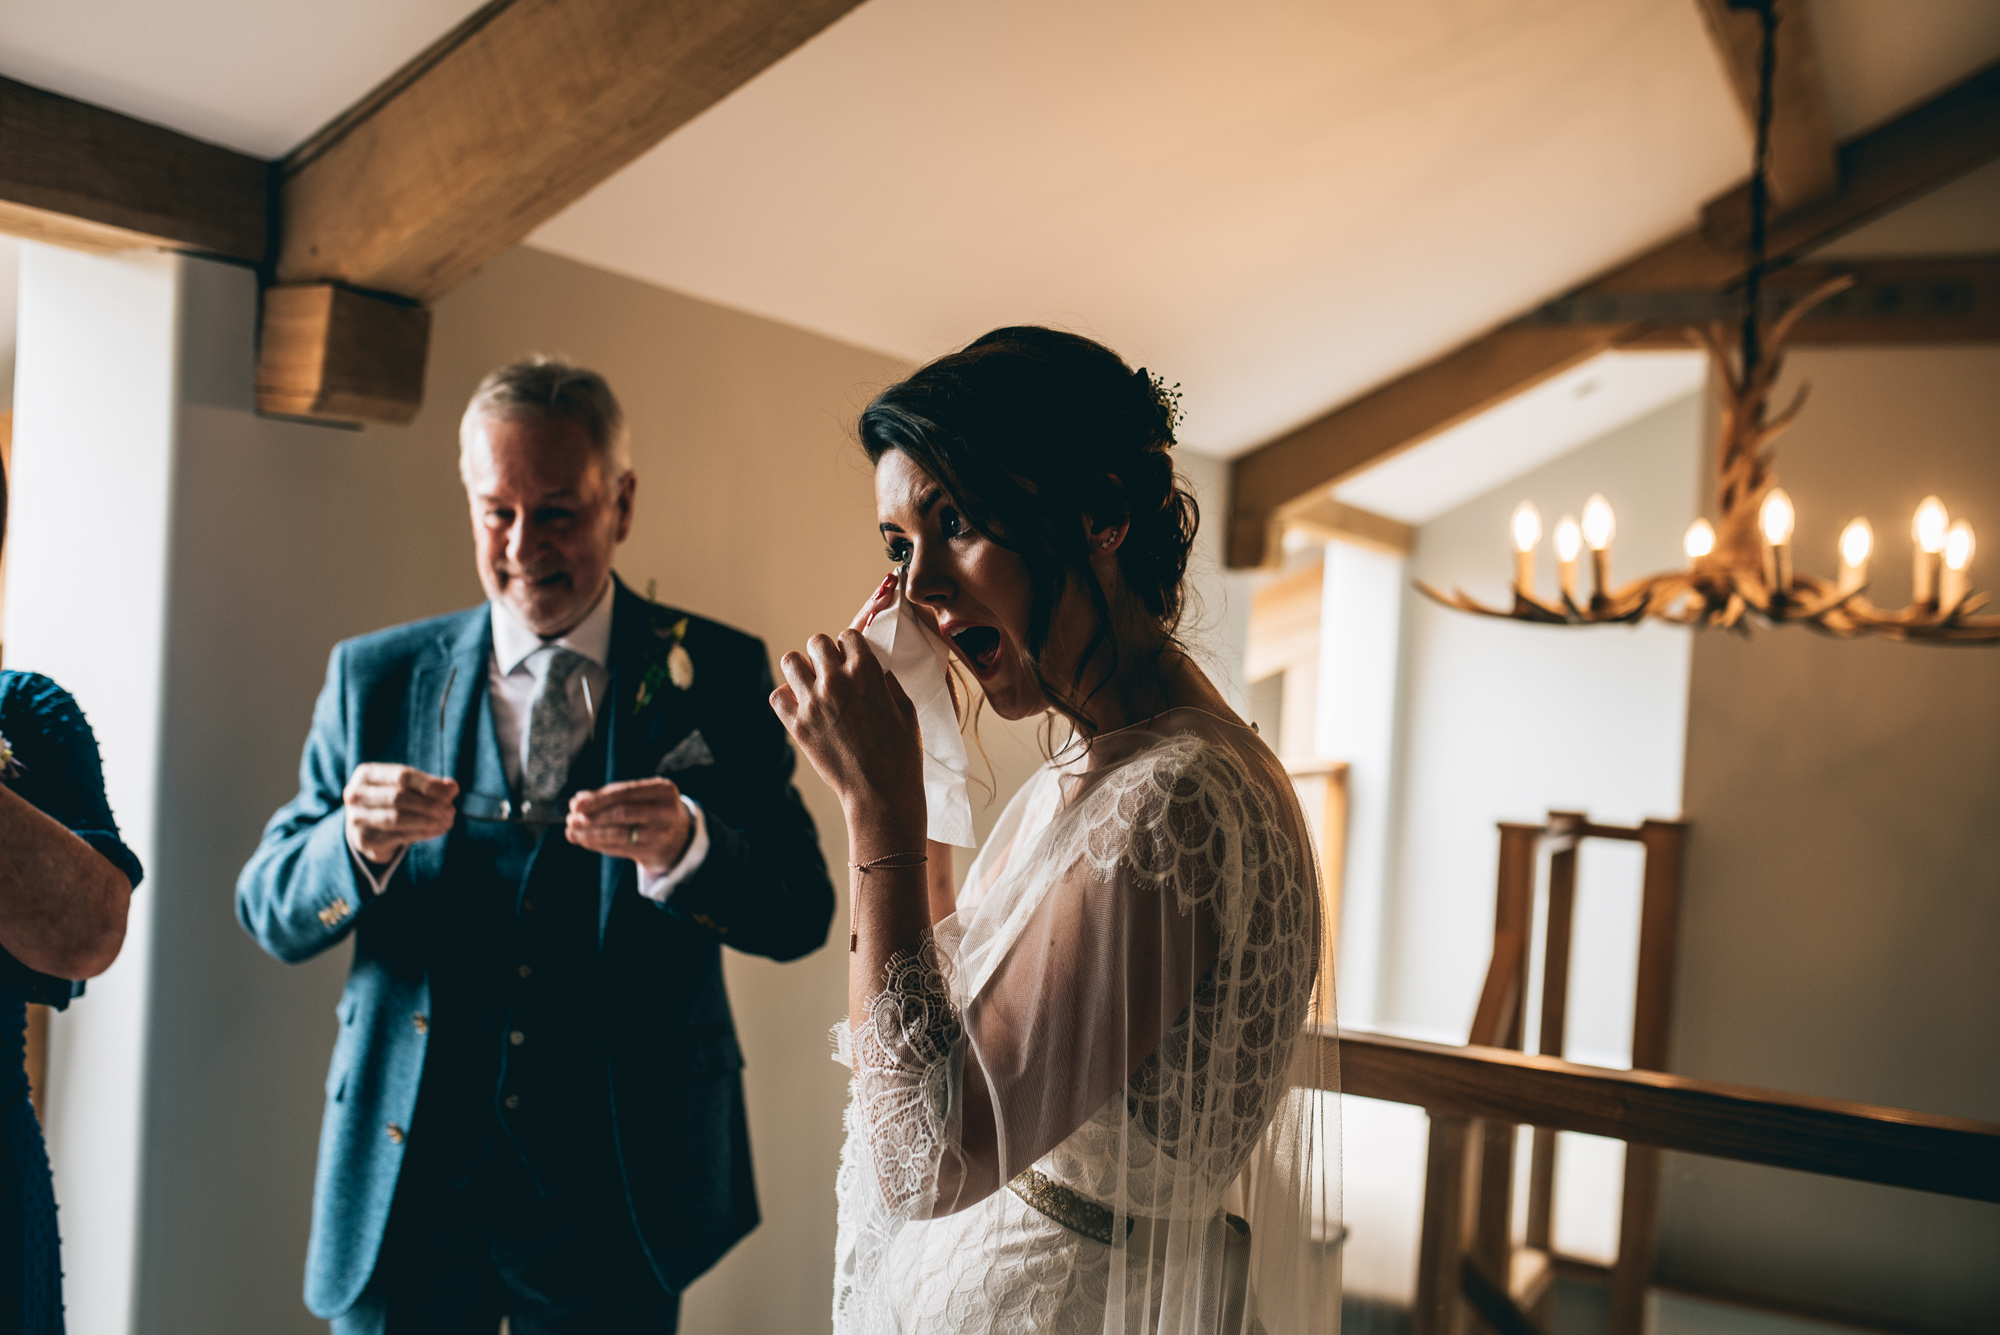 Kate-Beaumont-Sheffield-Lucy-Bohemian-Lace-Dress-Barn-Wedding-Cumbria-4.jpg